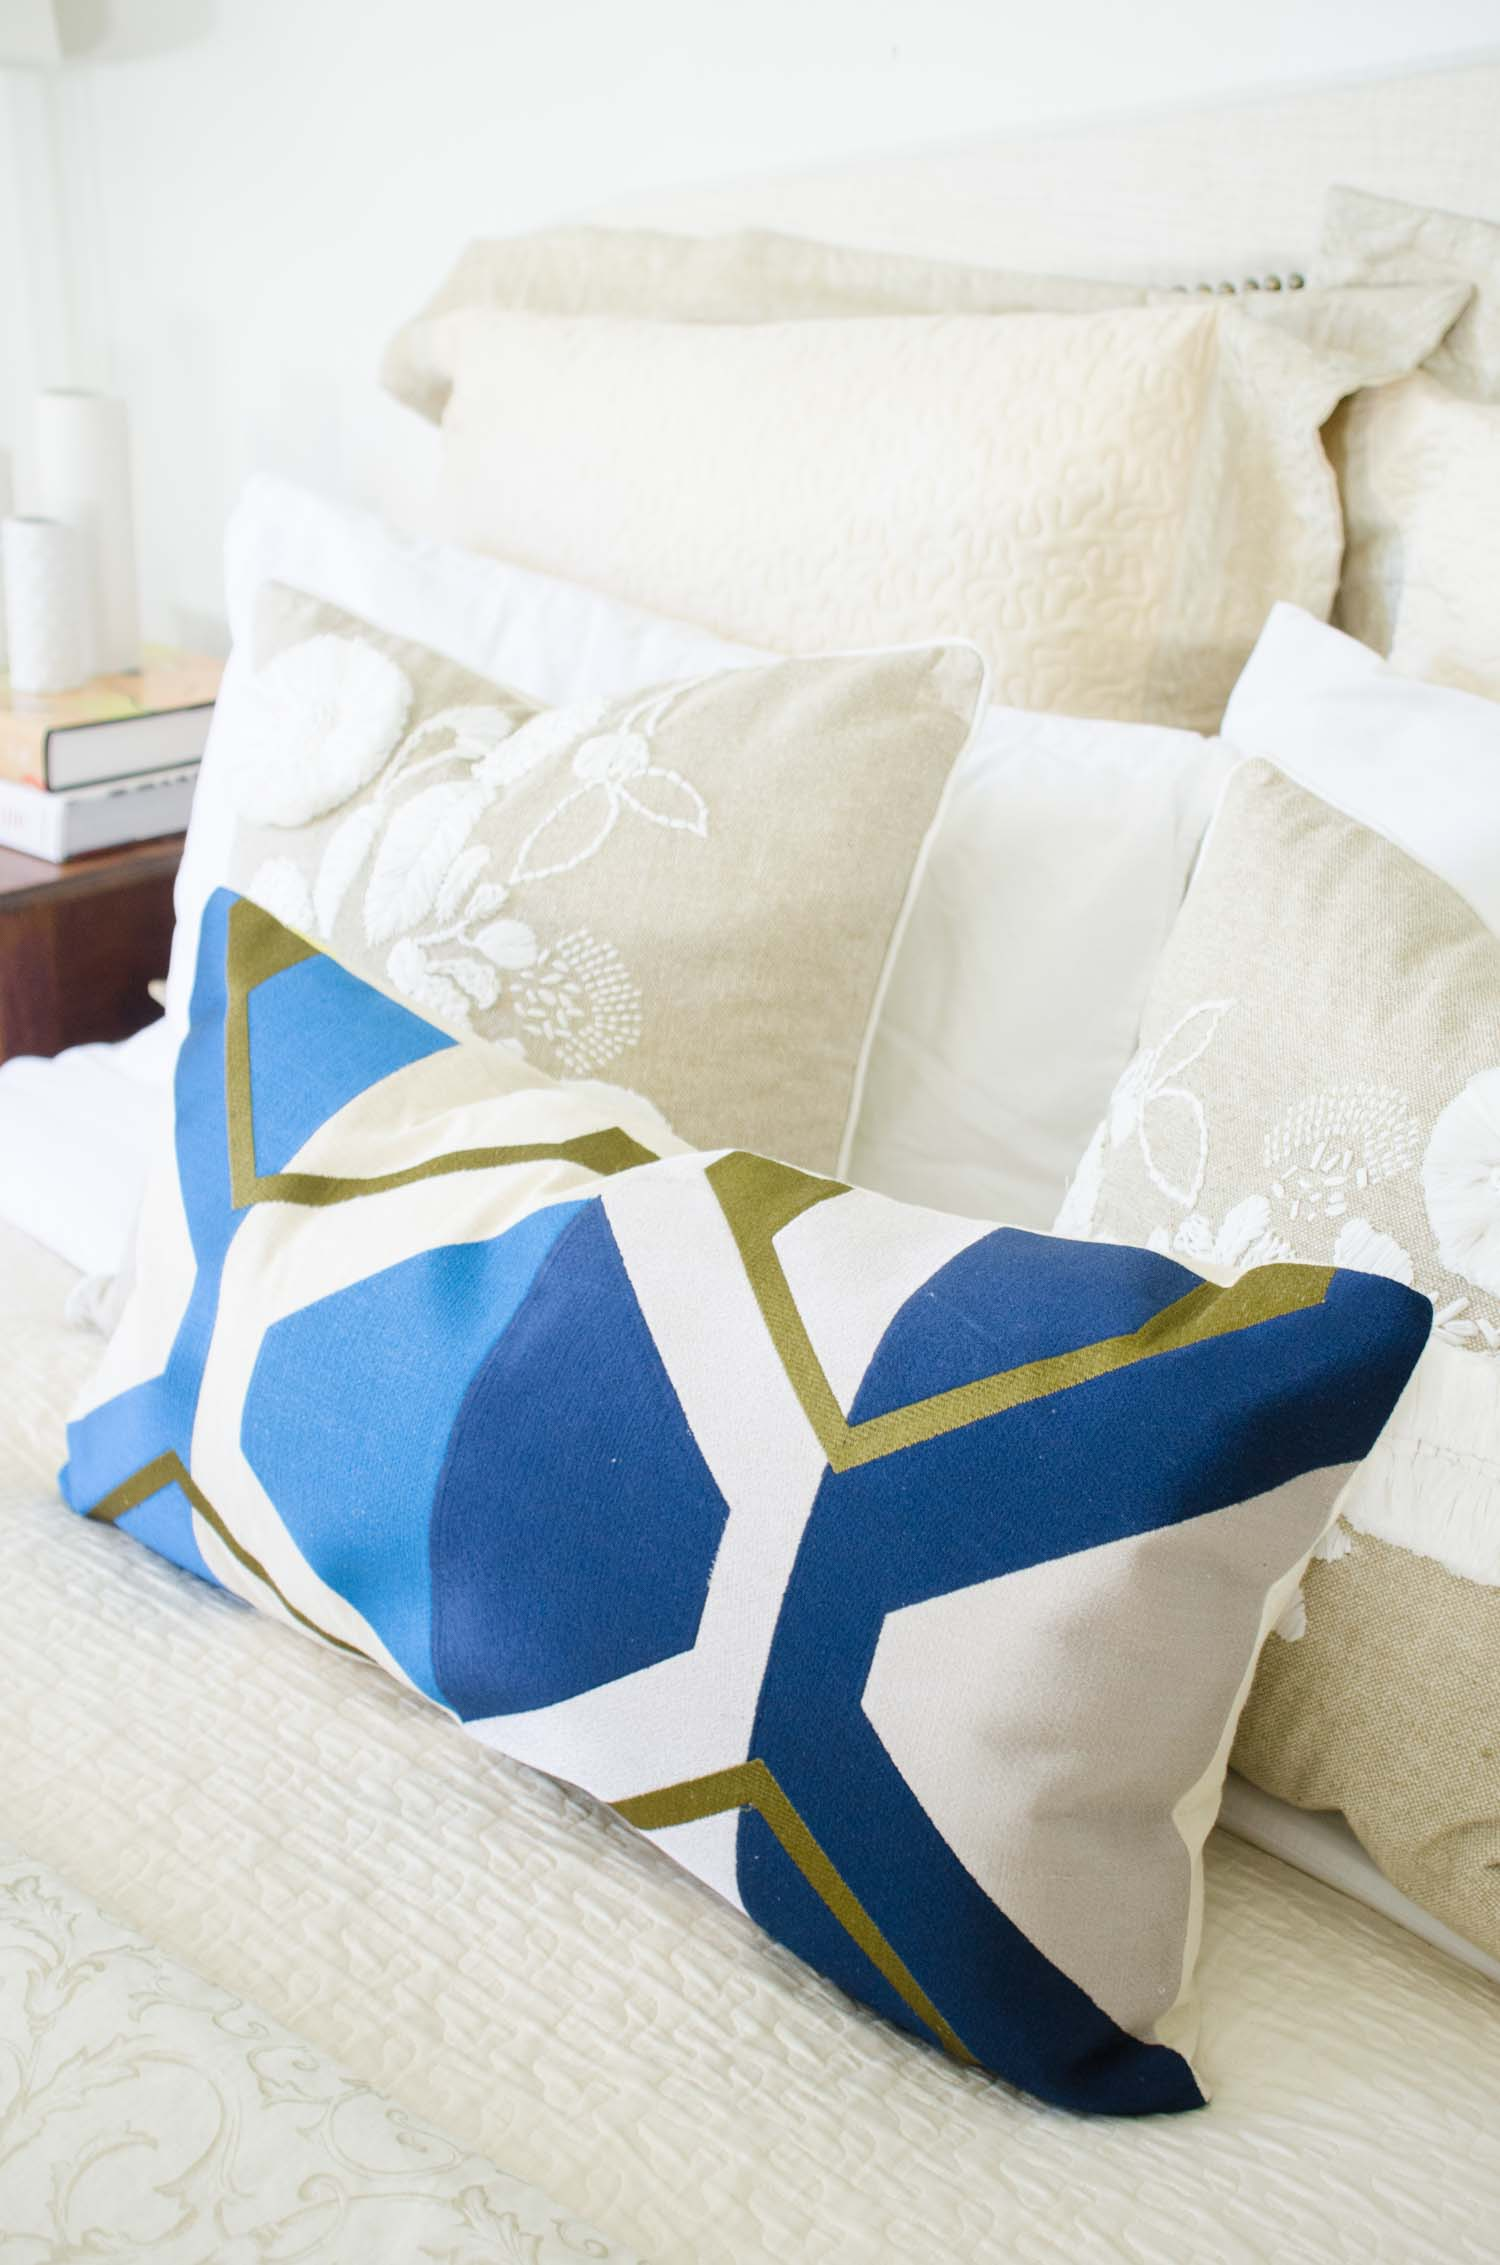 Traditional neutral bedroom with blue lumbar pillow via @thouswellblog